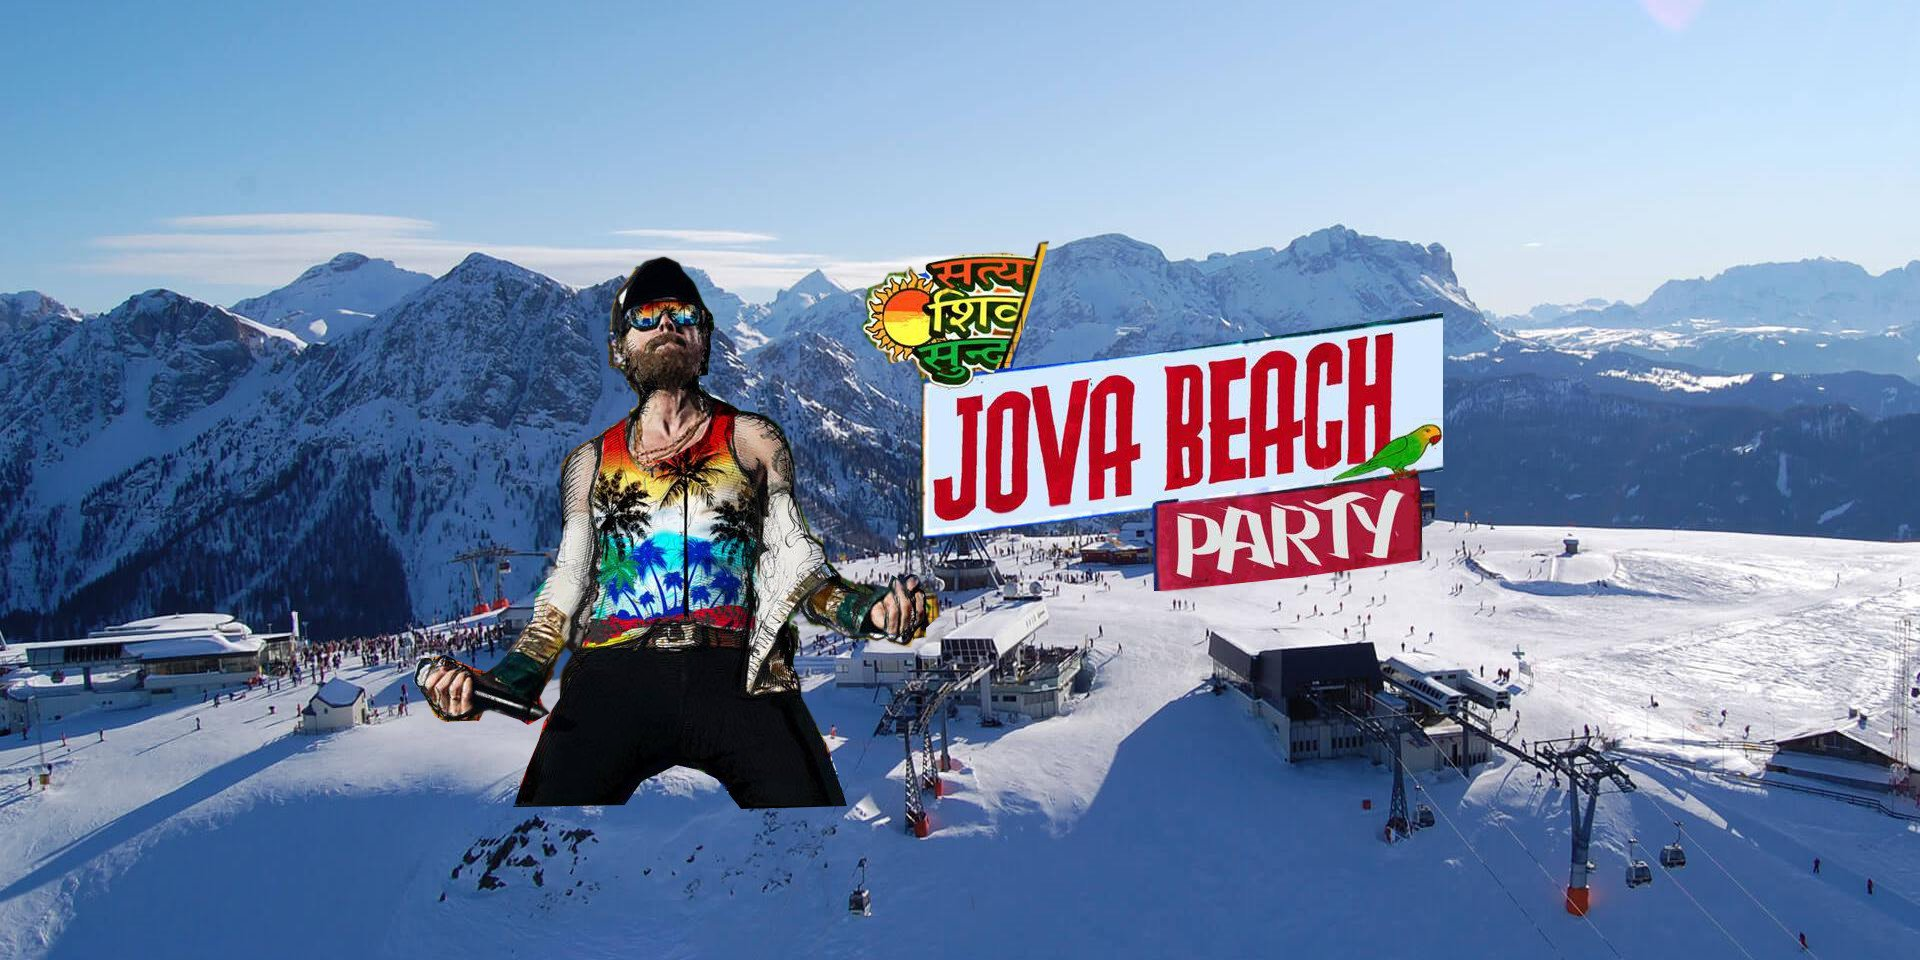 Jova Beach Party a Pian de Corones.